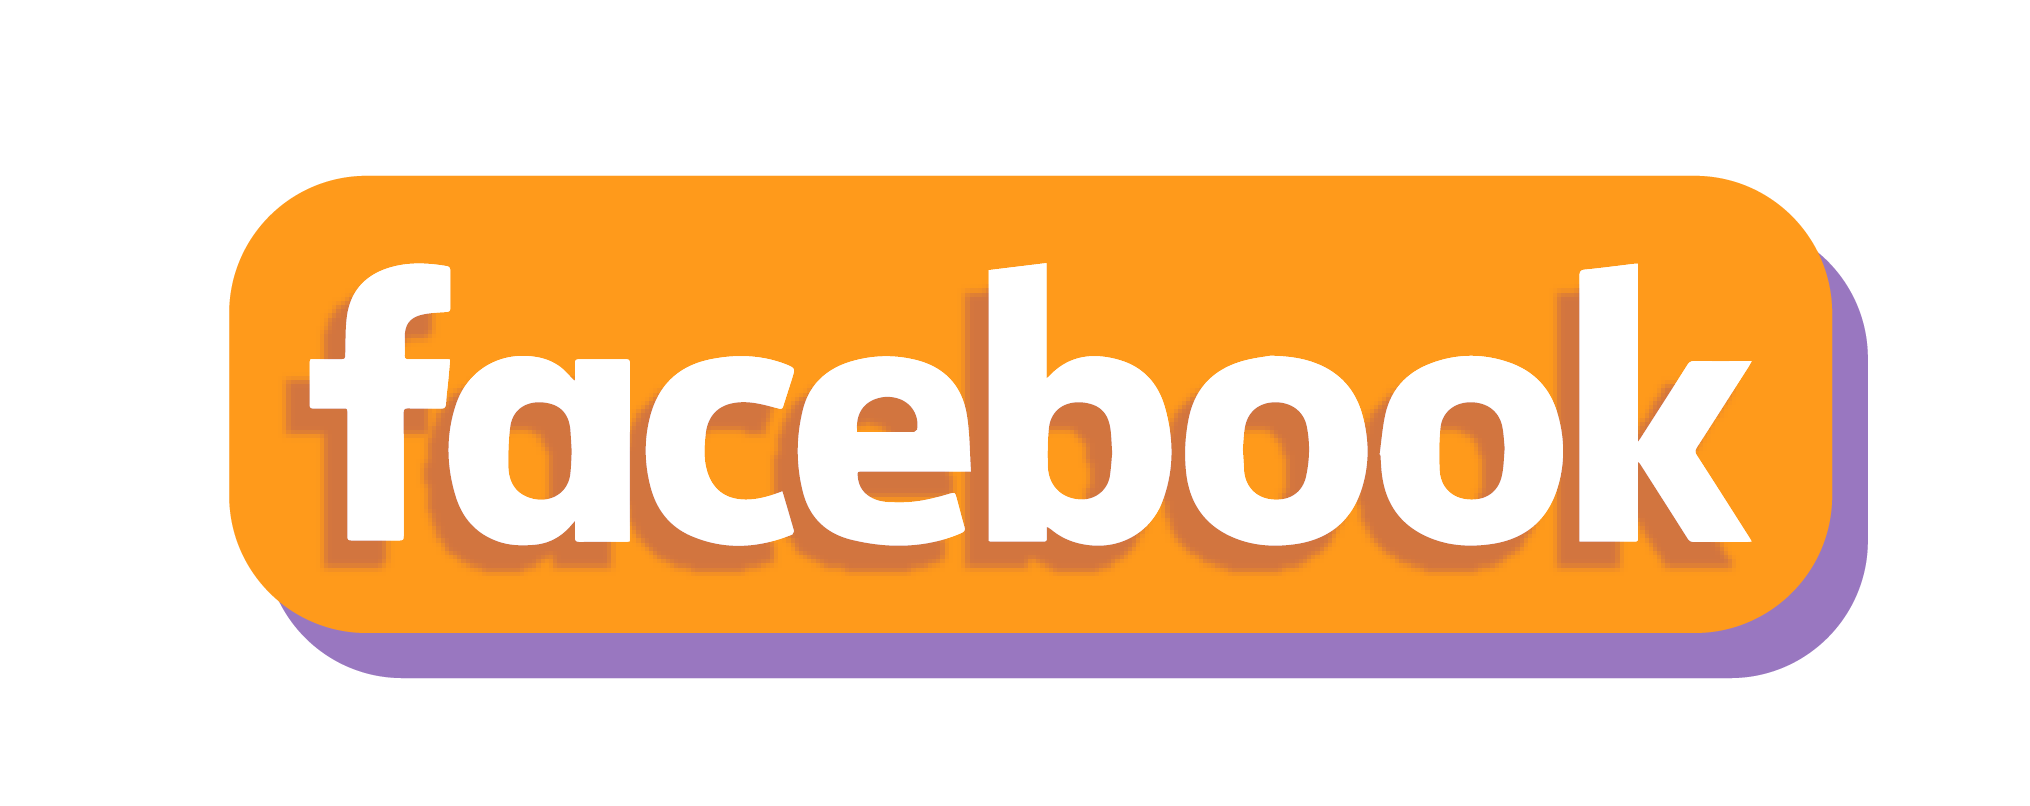 facebook button-01.png